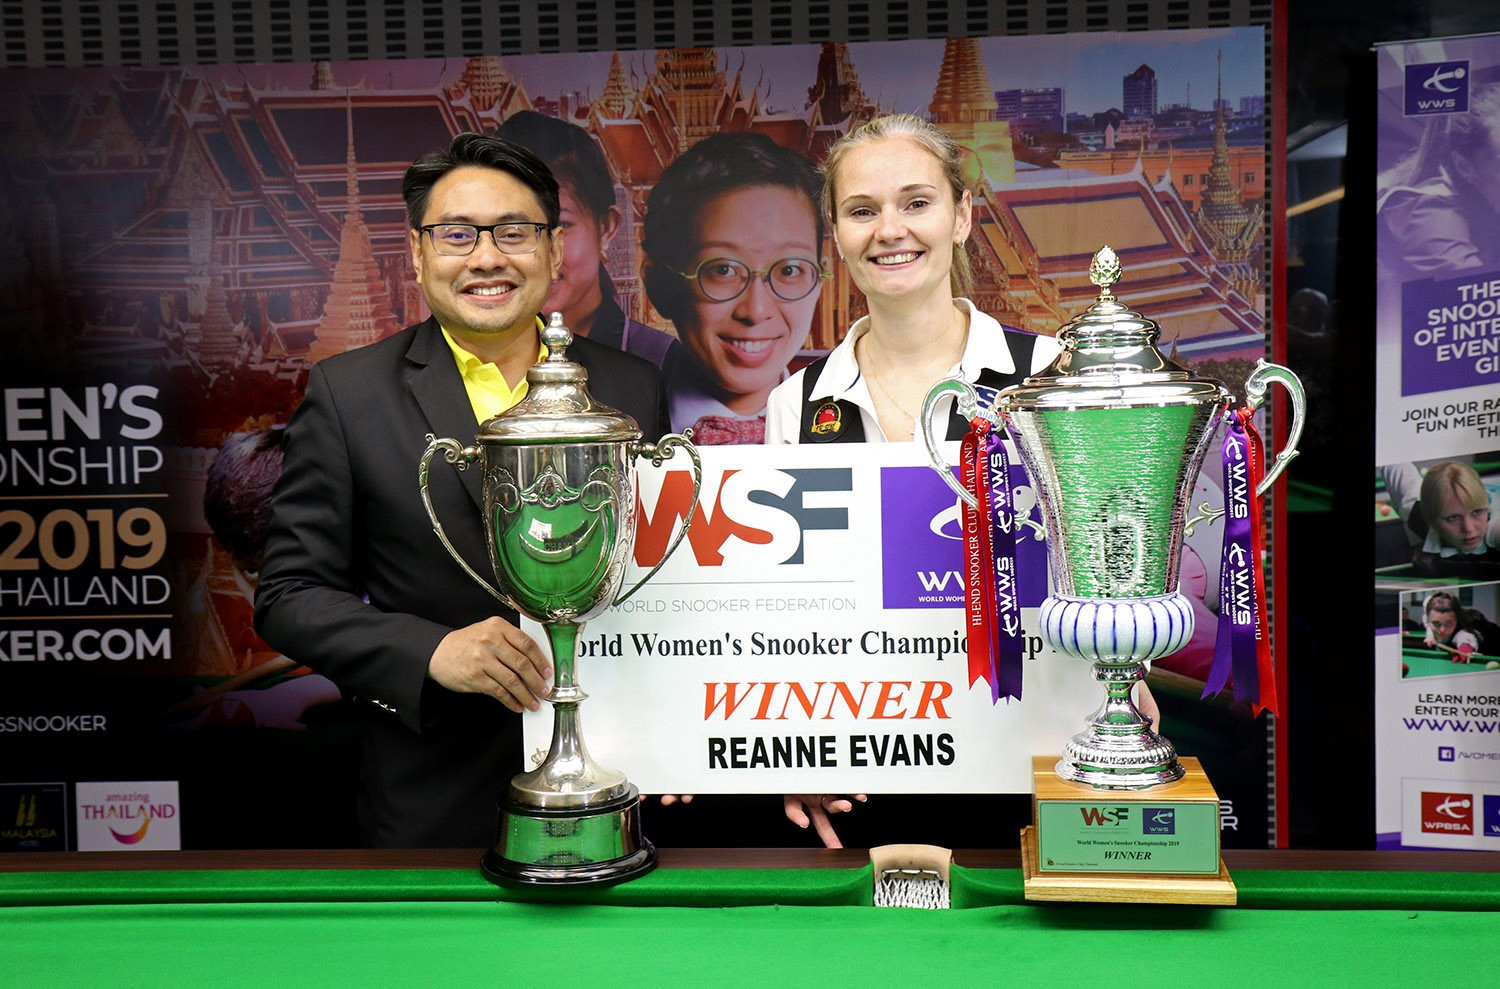 World Women's Snooker Championship in Bangkok postponed due to COVID-19